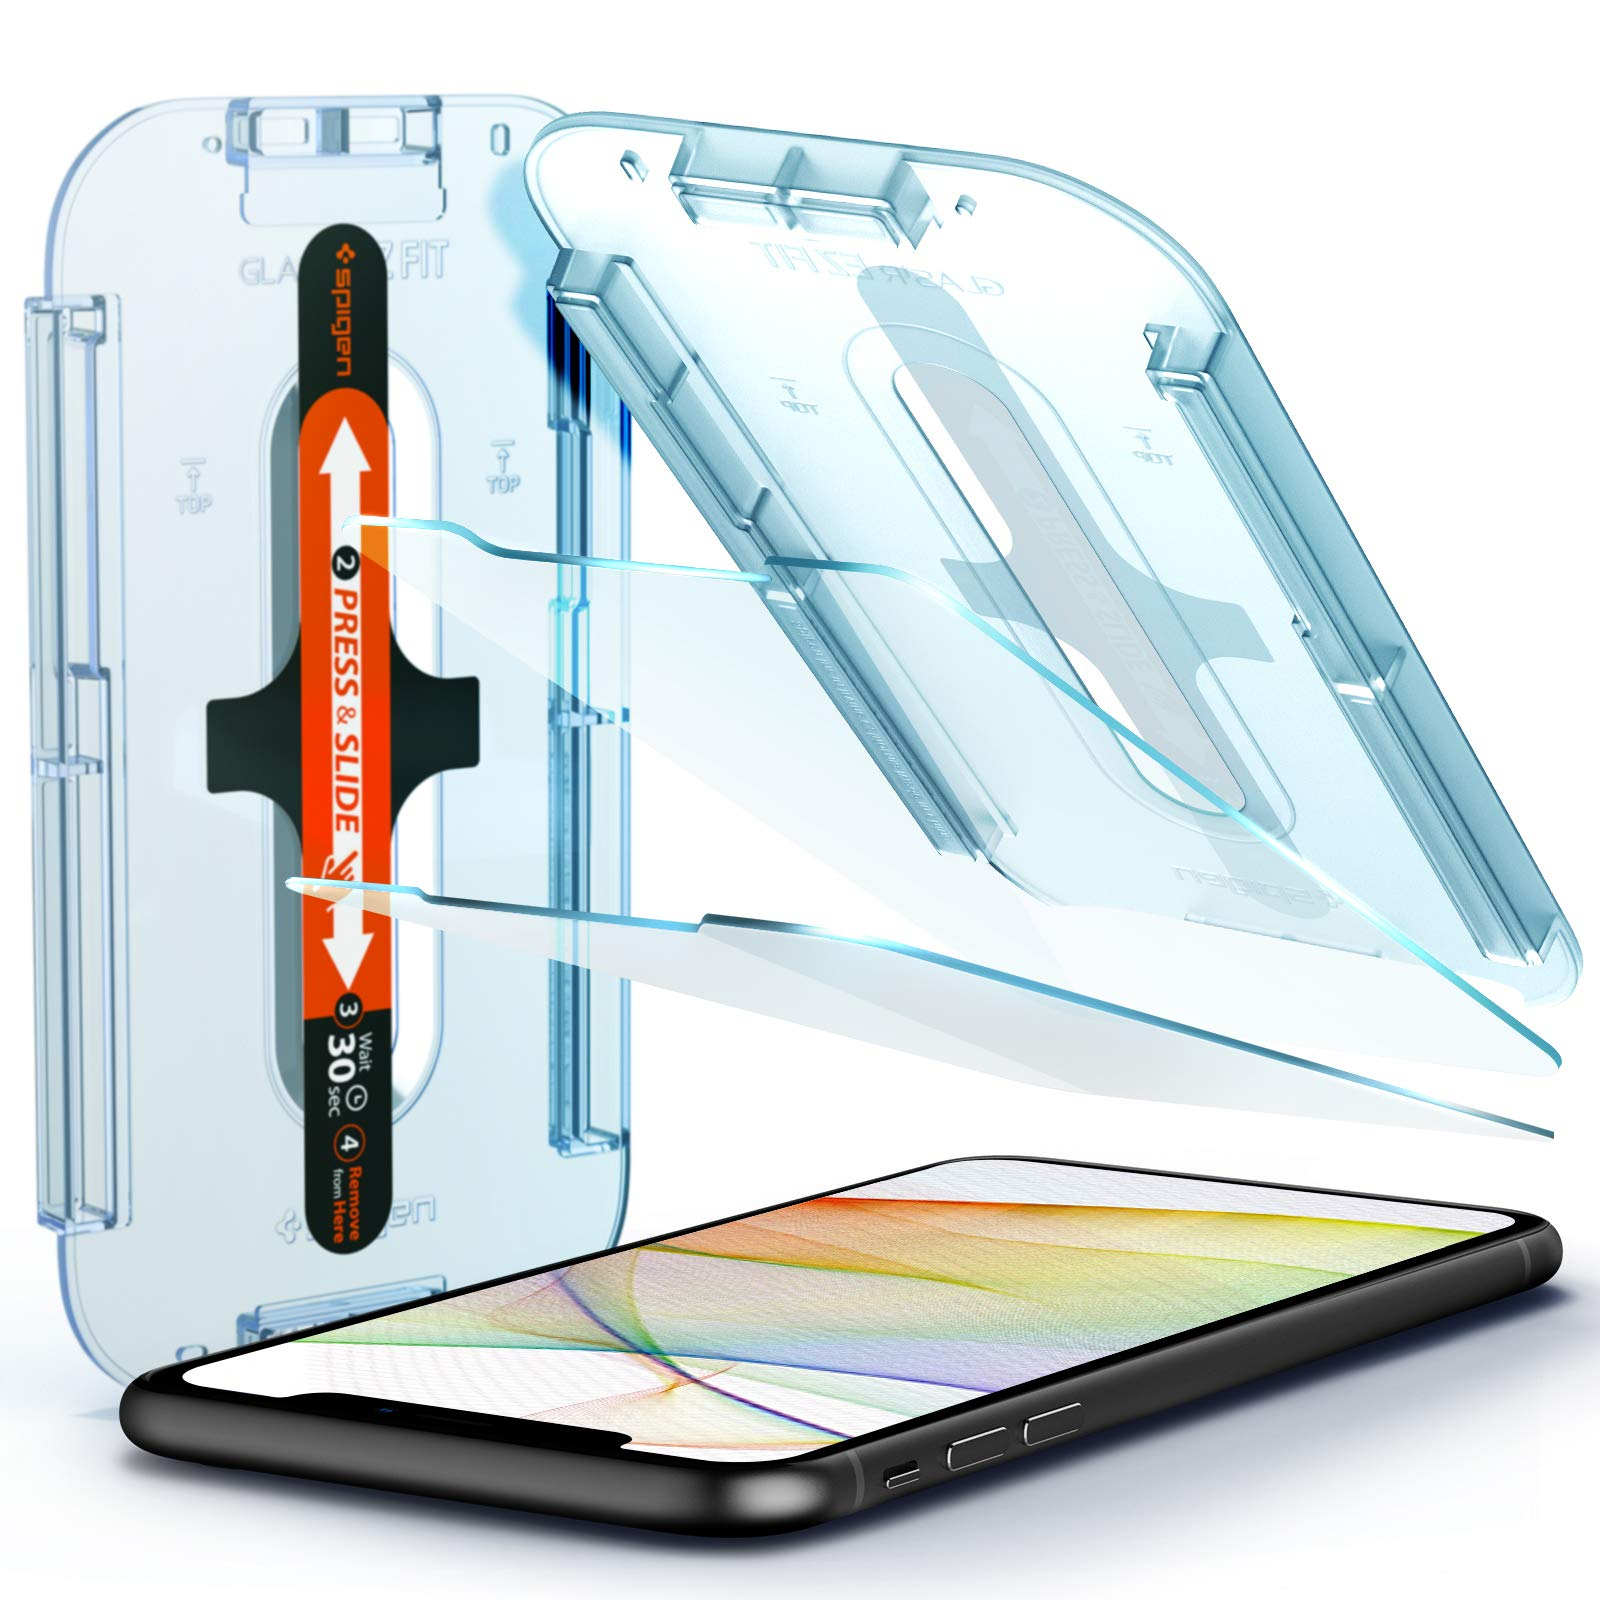 Spigen Tempered Glass Screen Protector [Glas.tR EZ Fit] designed for iPhone 11 / iPhone XR [6.1 inch] [Case Friendly] - 2 Pack